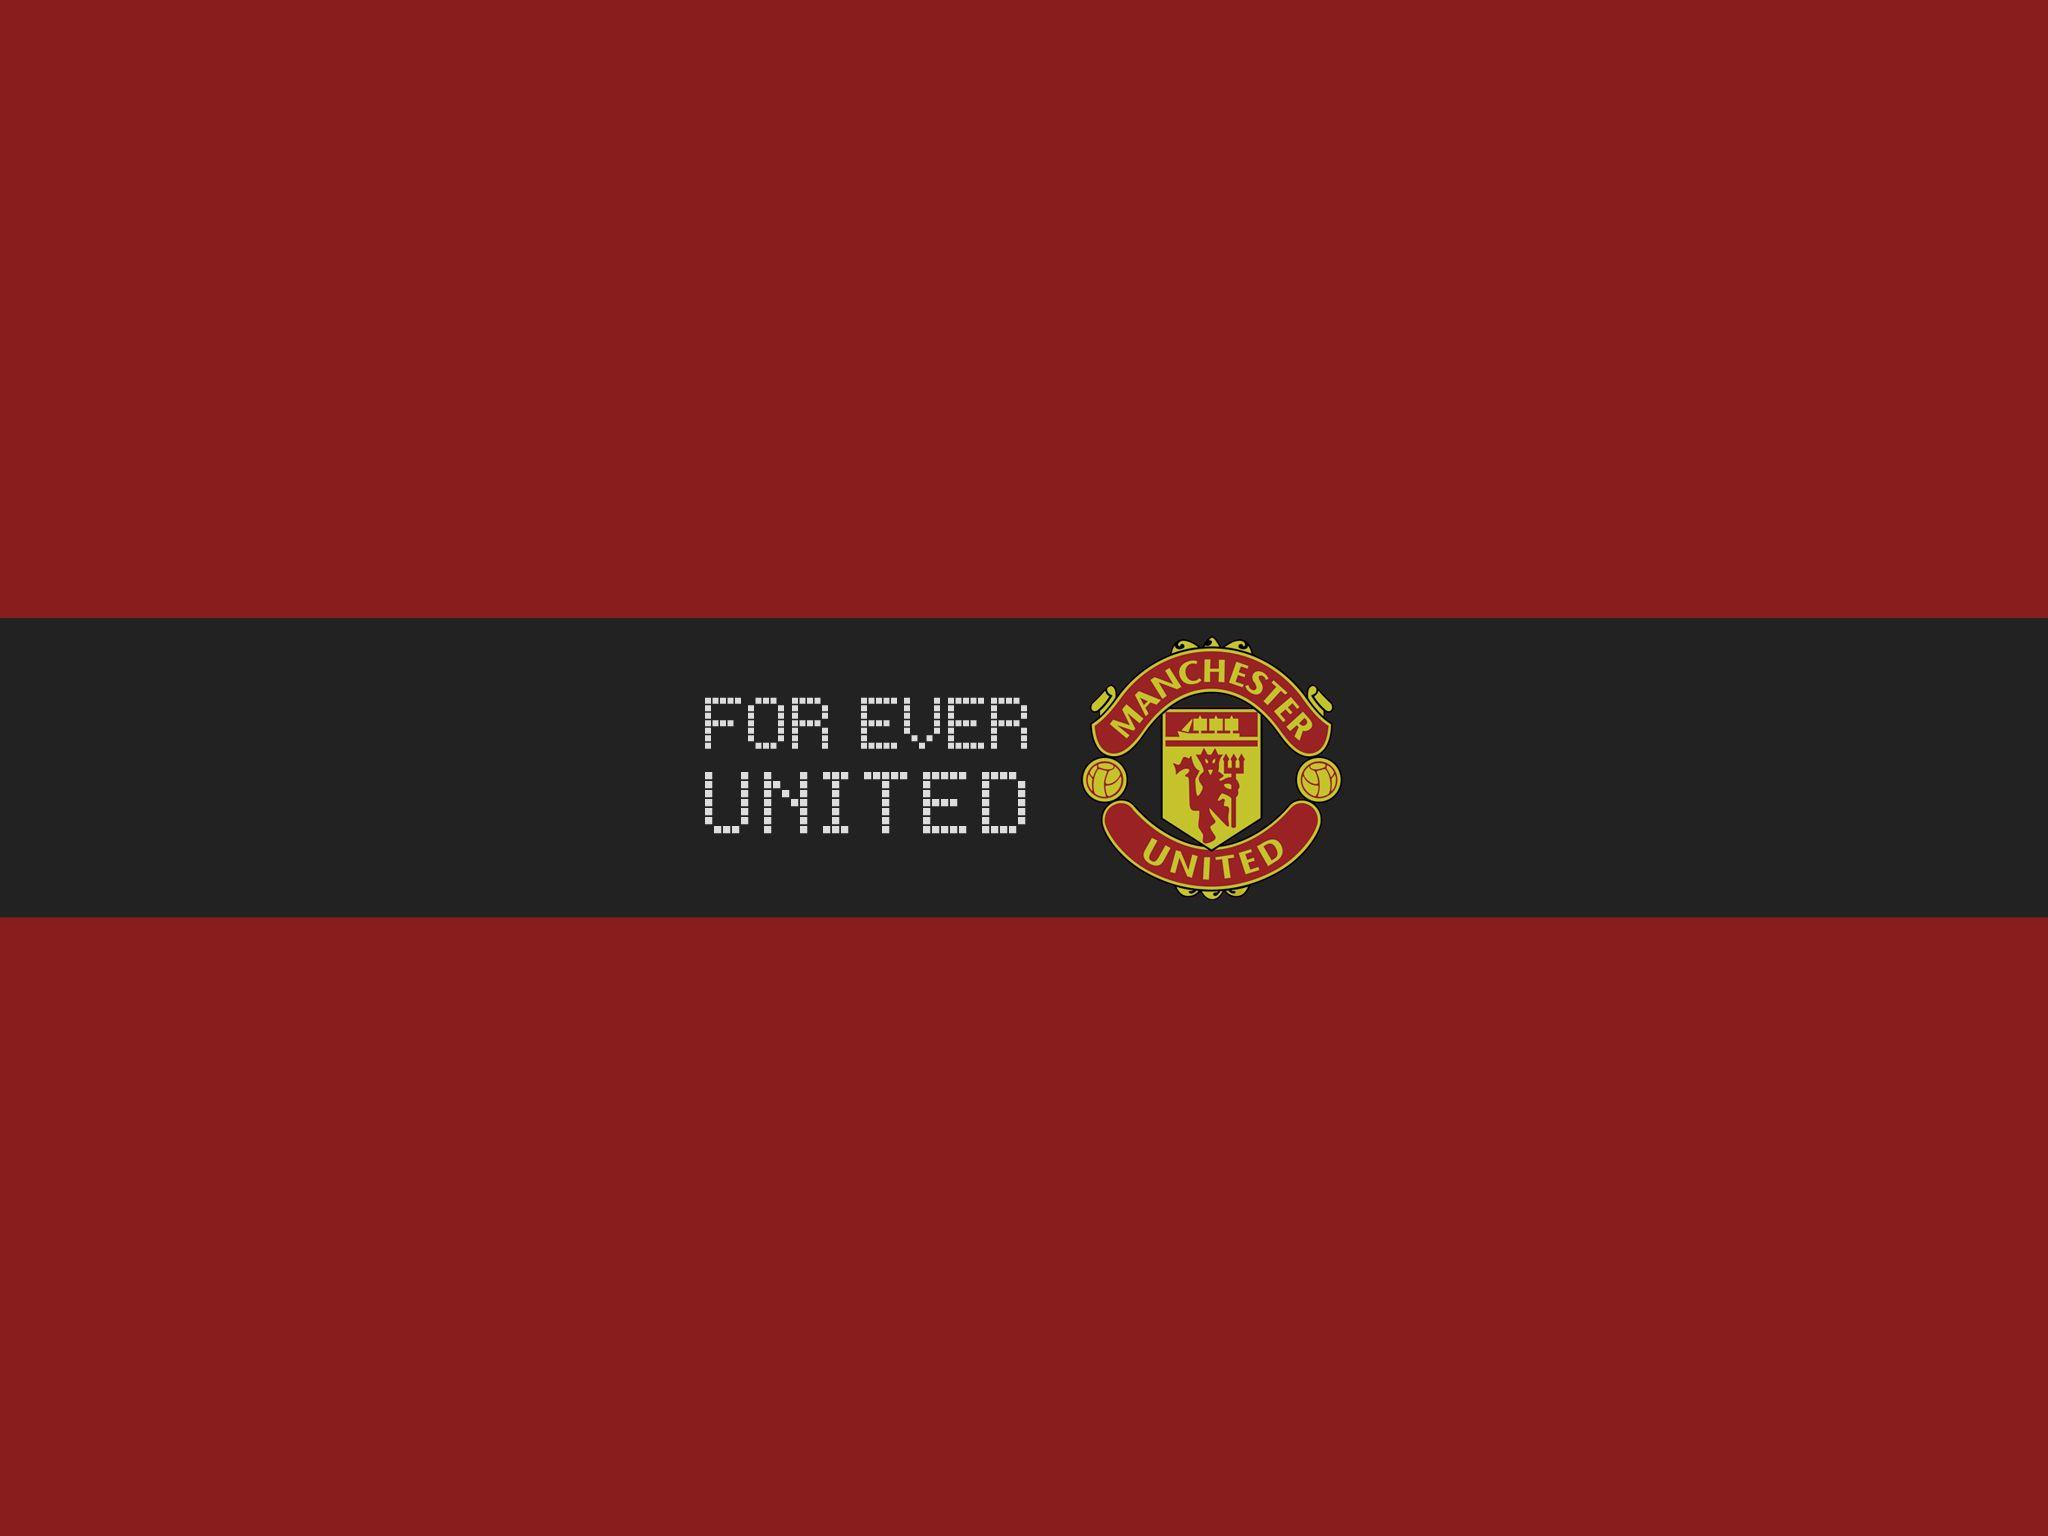 Manchester United High Def Logo Wallpapers | HD Wallpapers ...